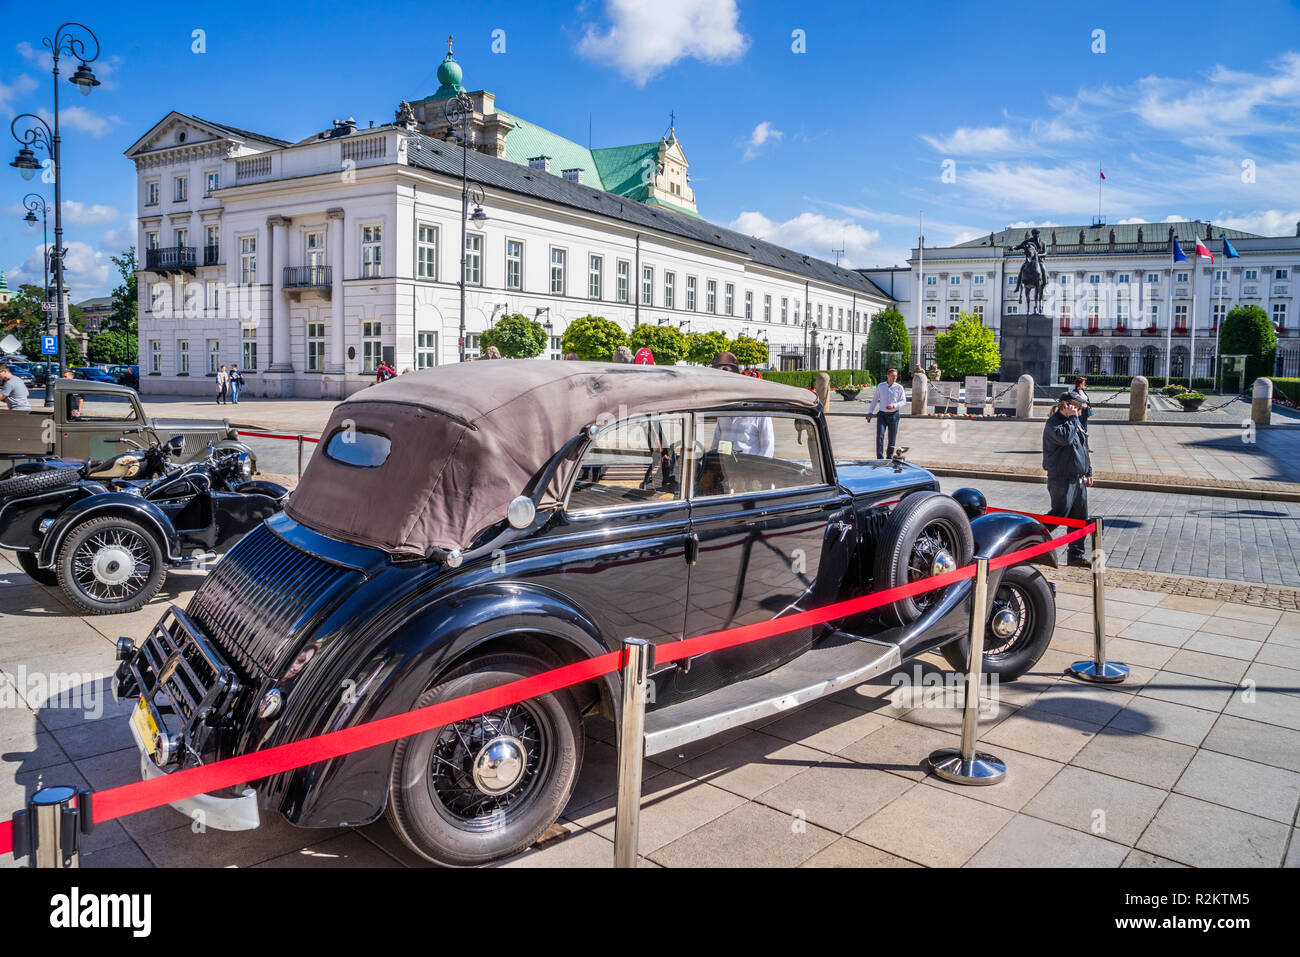 streets of Warsaw '44 historical exhibition of period paraphernalia duing the Warsaw Uprising, historical vehicles at the Potocki Palace oposite the P - Stock Image